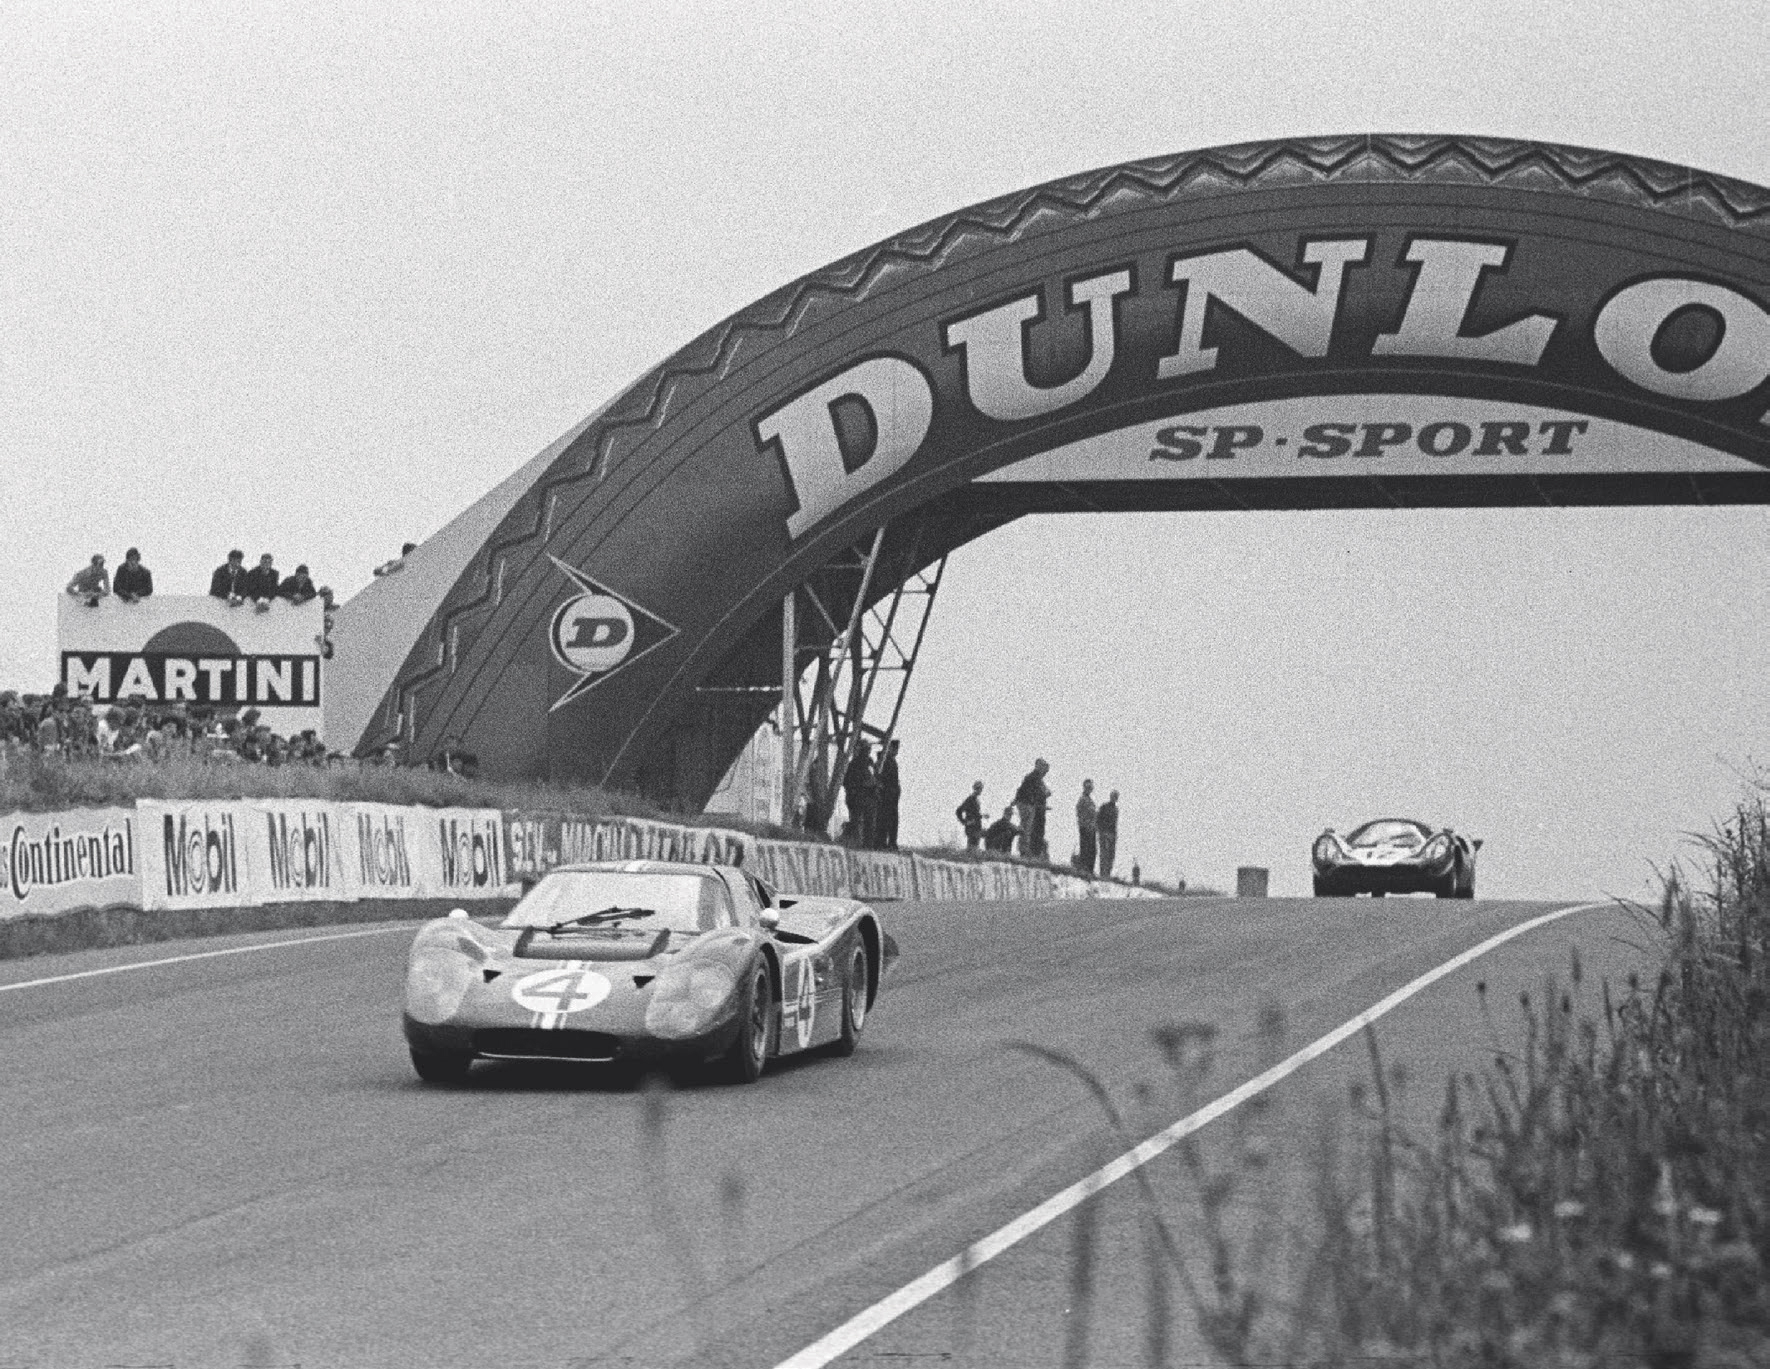 The Holman & Moody Mark IV driven by Denny Hulme and Lloyd Ruby leads a Lola T70 under the Dunlop Bridge. Although Hulme set an early lap record, the car retired when Ruby beached it at Tertre Rouge.